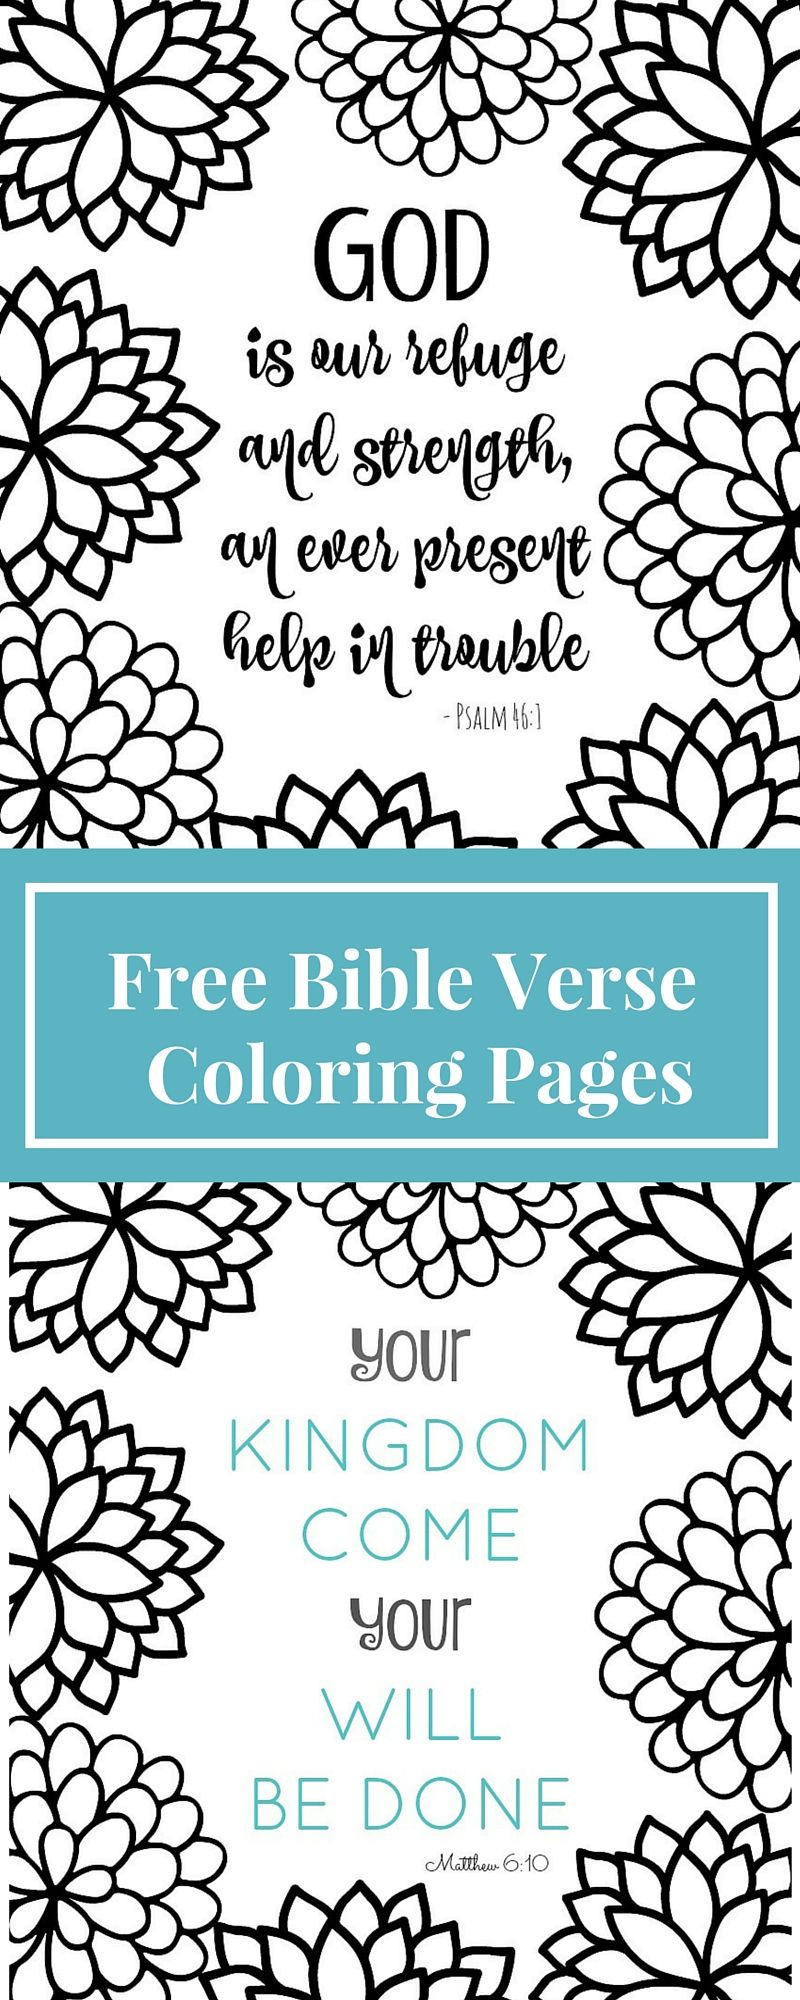 Printable adult thanksgiving coloring sheet - Coloring Pages Are For Grown Ups Now These Bible Verse Coloring Page Printables Are Fun